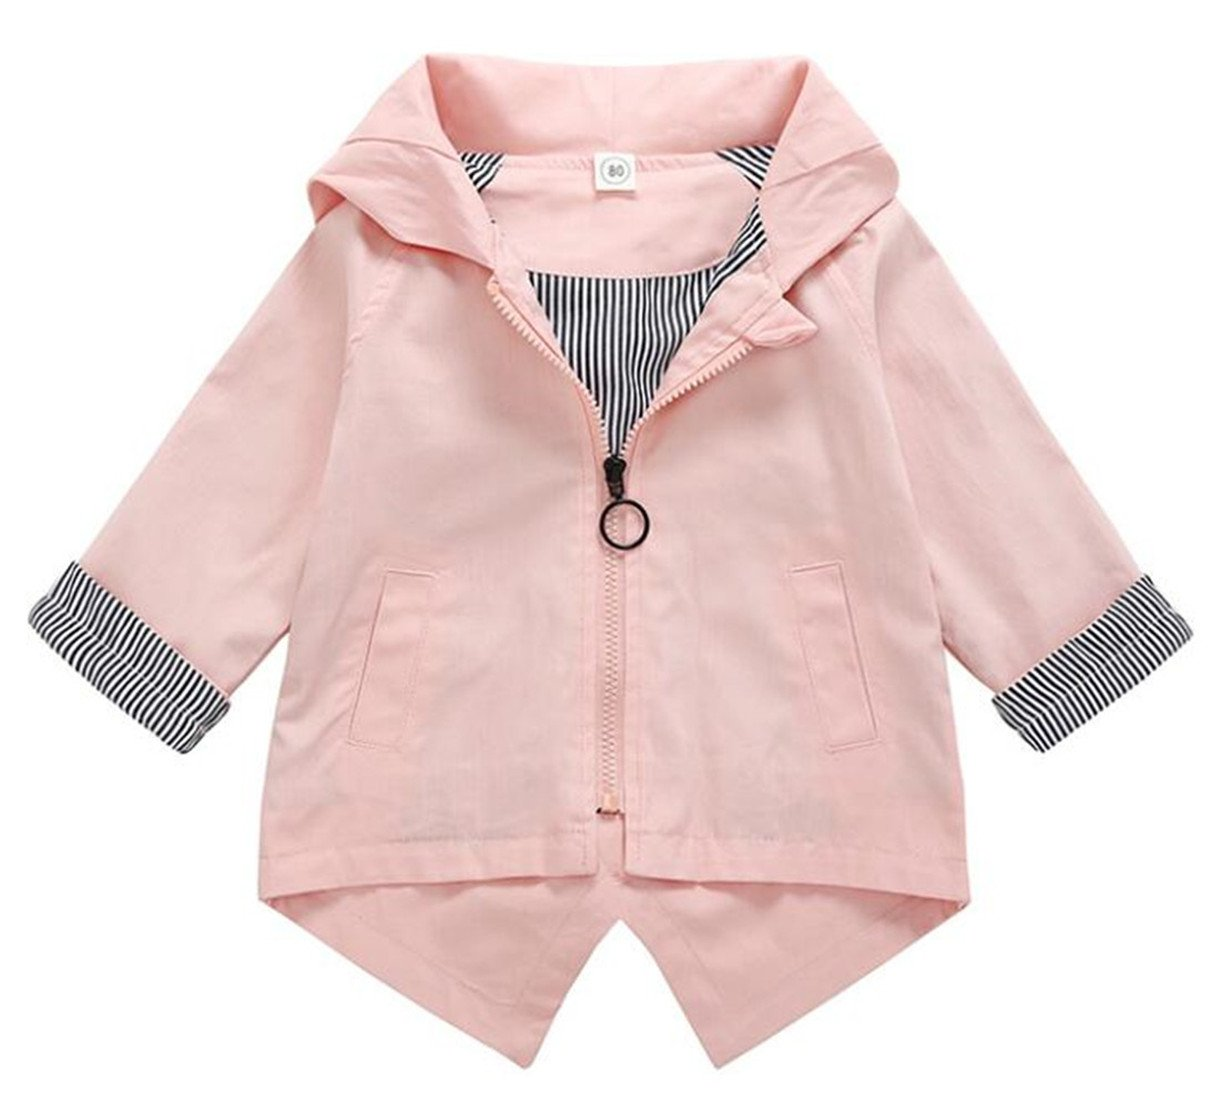 UNIQUEONE Toddler Boys Girls Cartoon Bunny Hooded Coat Long Sleeve Outerwear Jacket Size 18-24 Months/Tag90 (Pink)